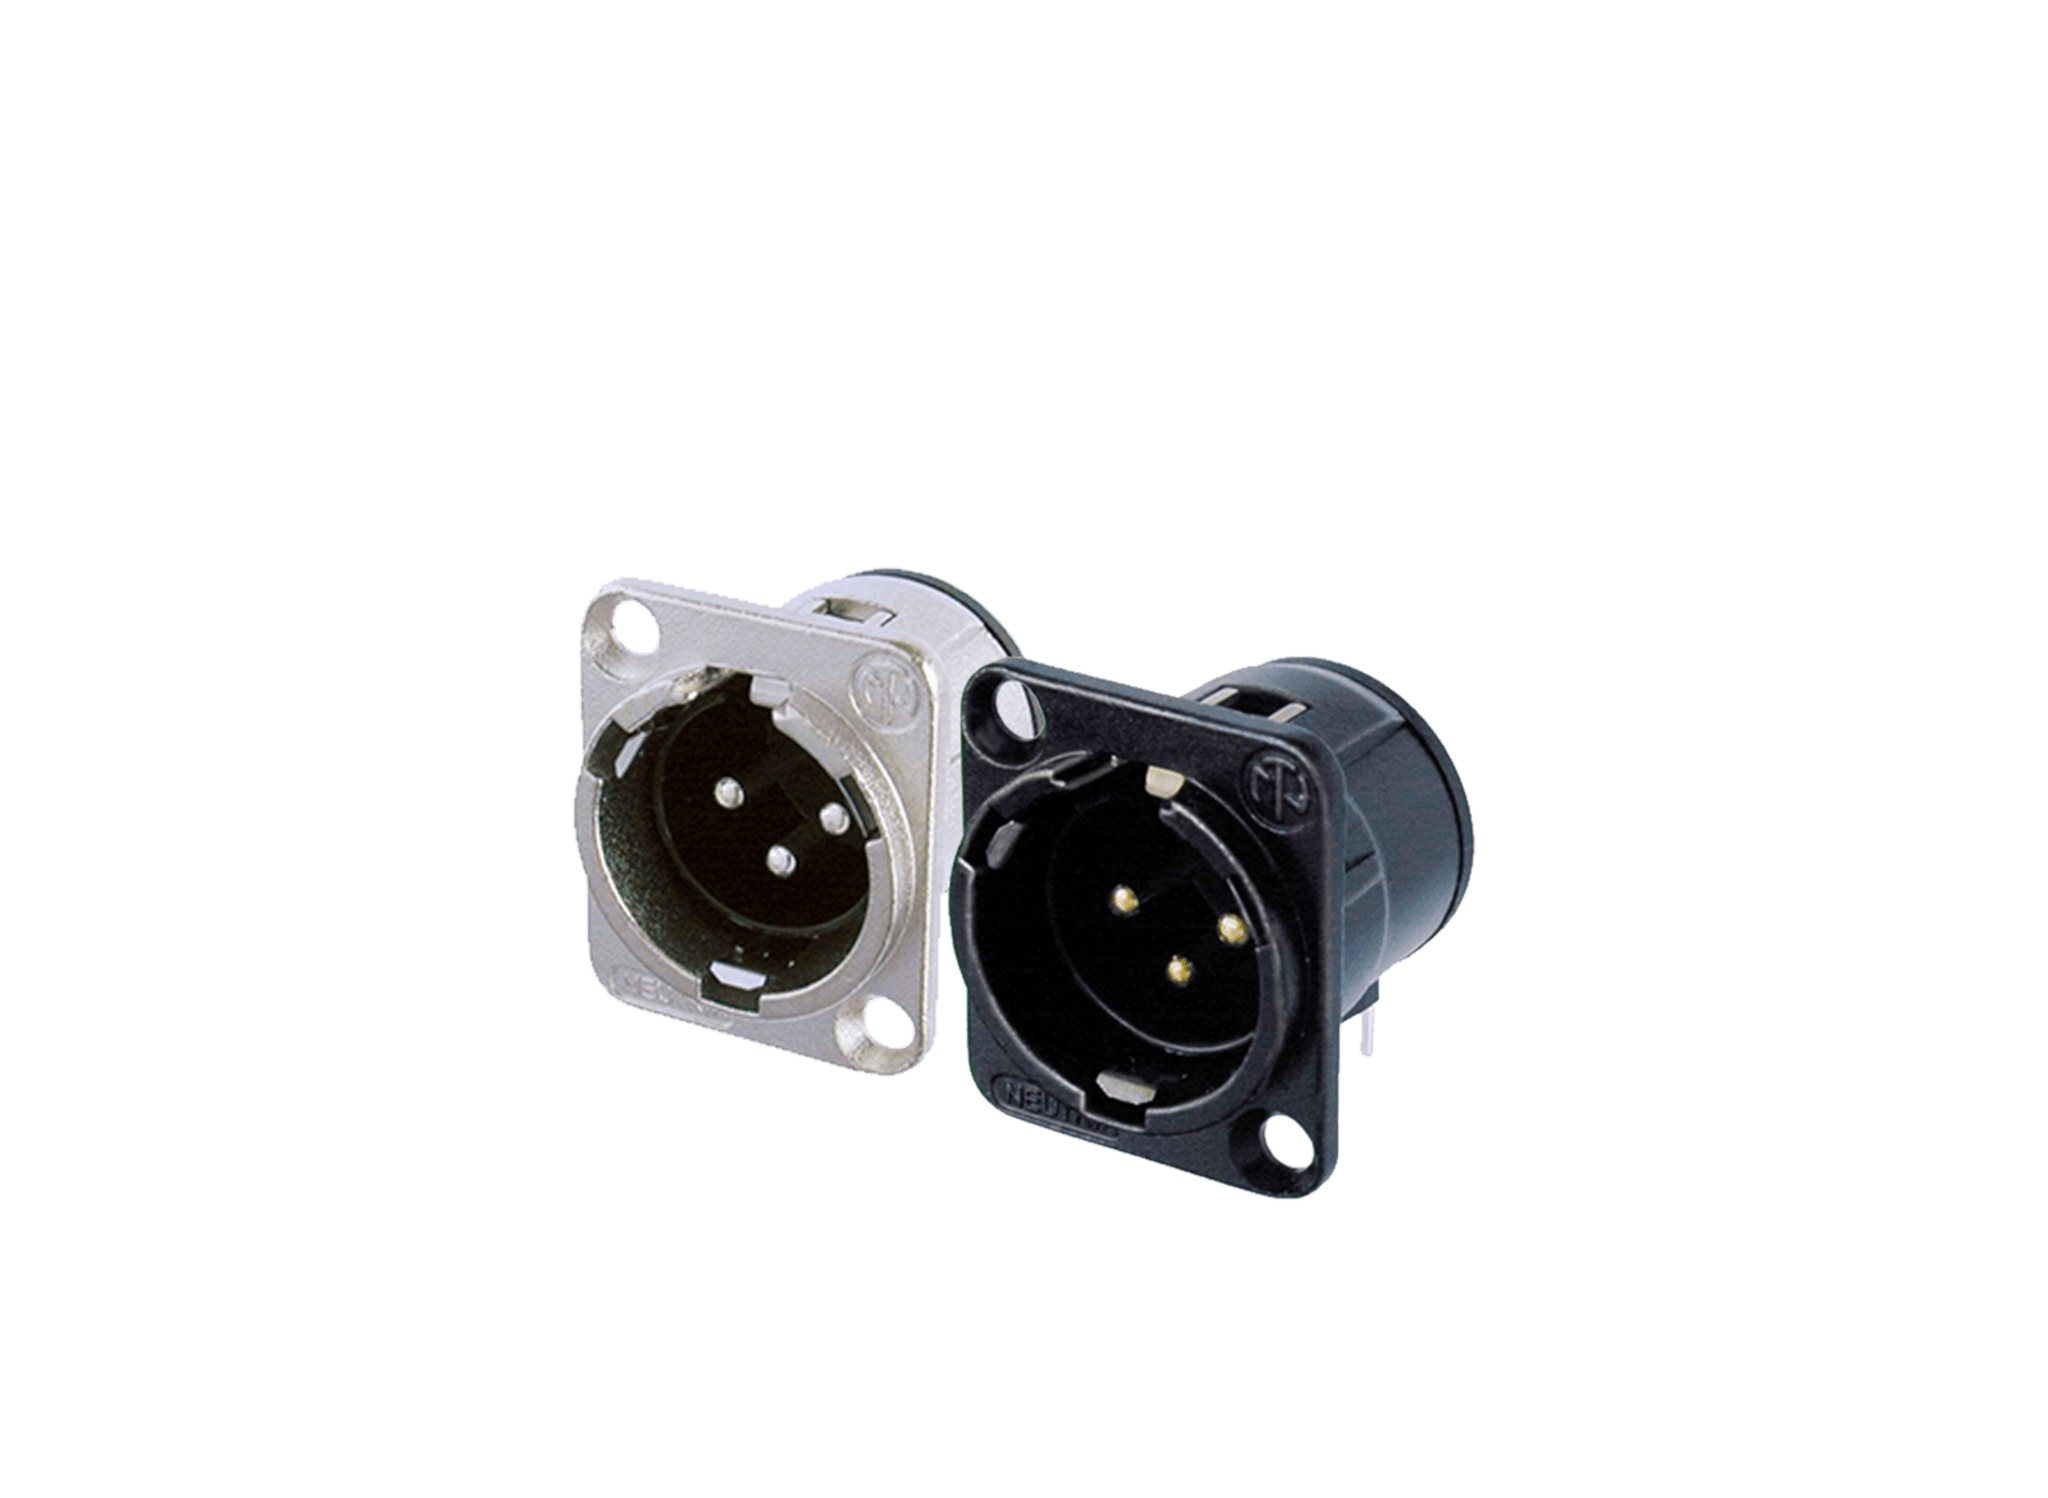 XLR chassis connectors -